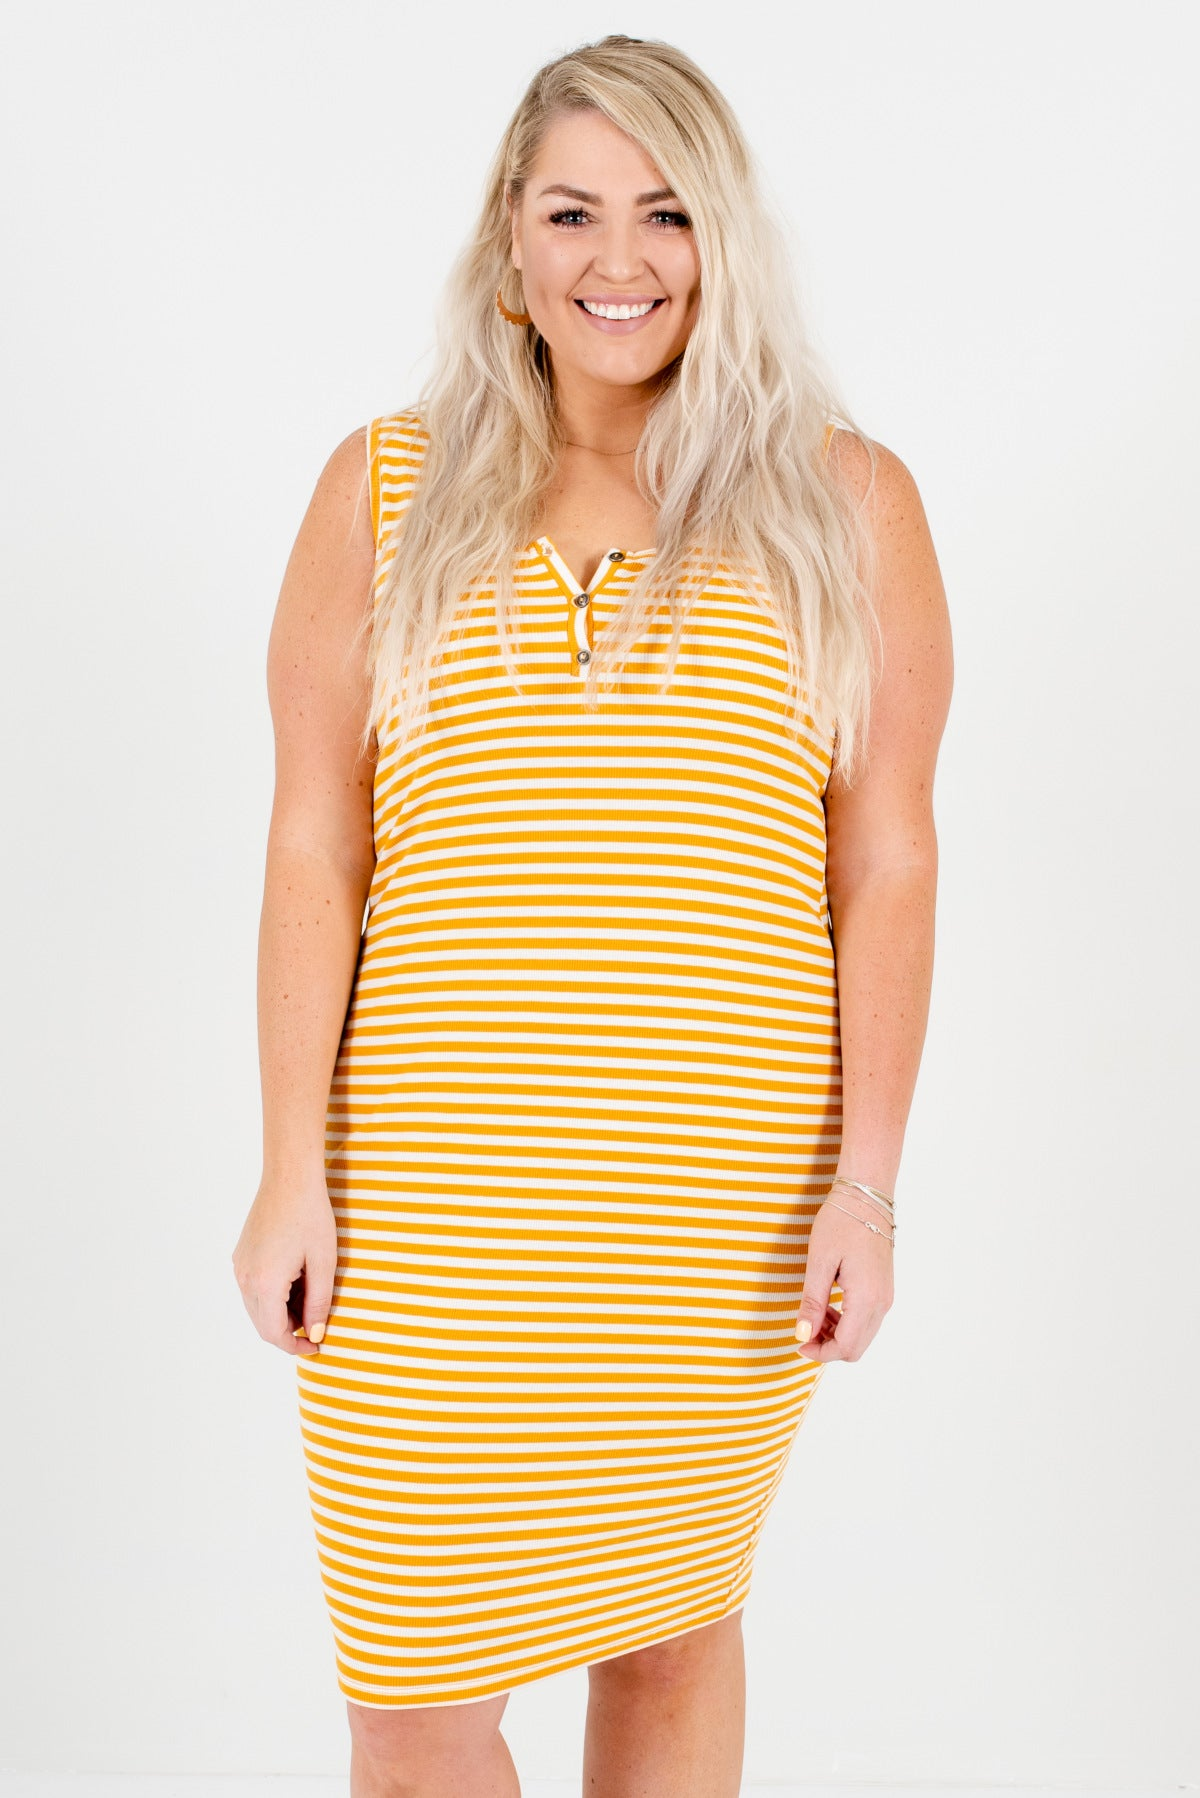 Mustard Yellow and White Striped Boutique Plus Size Knee-Length Dresses for Women